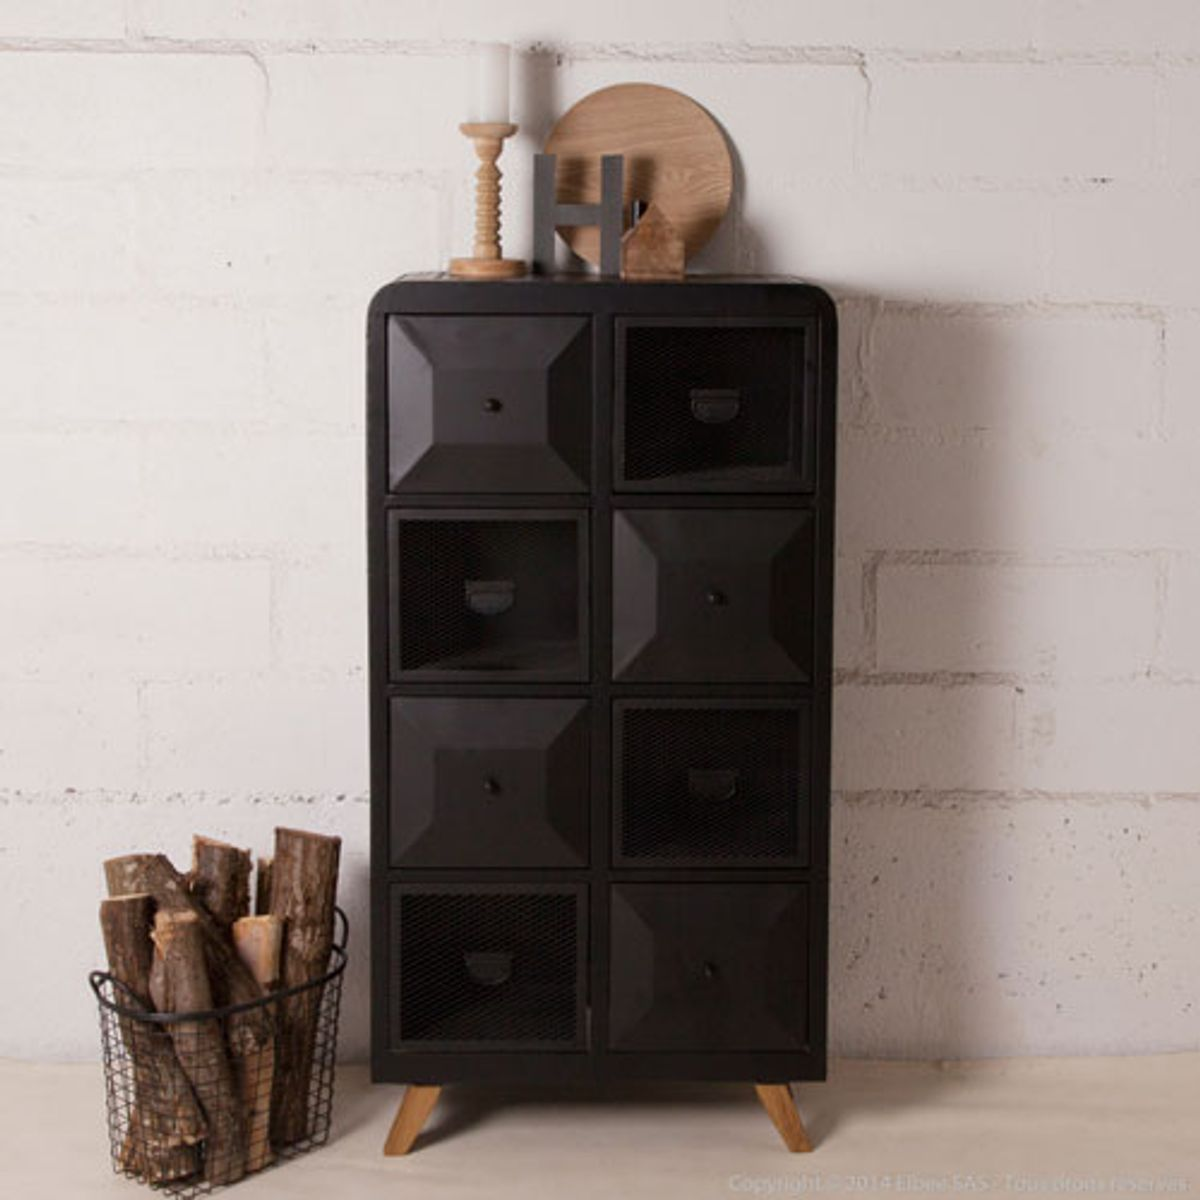 chiffonnier en m tal noir 8 casiers decoclico factory decoclico. Black Bedroom Furniture Sets. Home Design Ideas